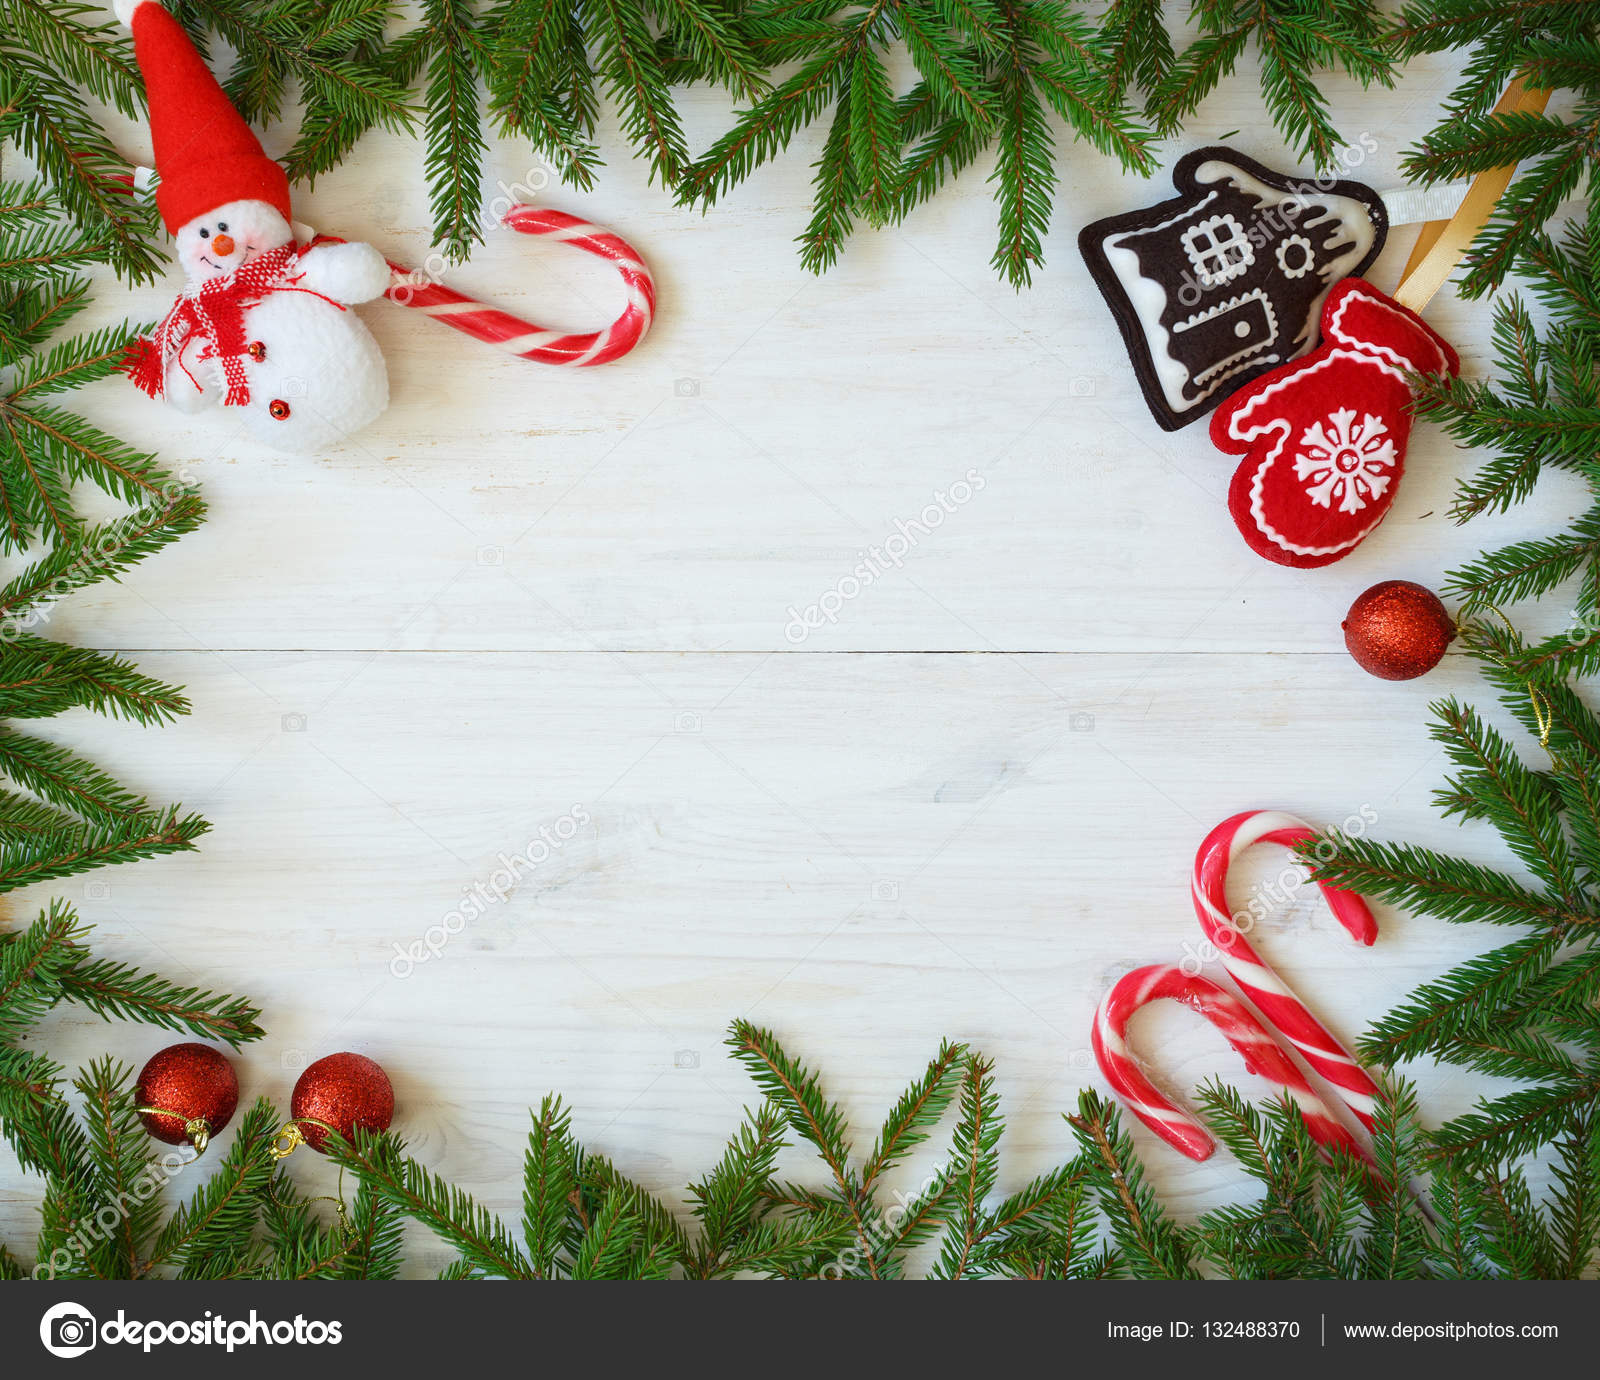 Christmas Border With Fir Tree Branches Decorations A Stock Photo